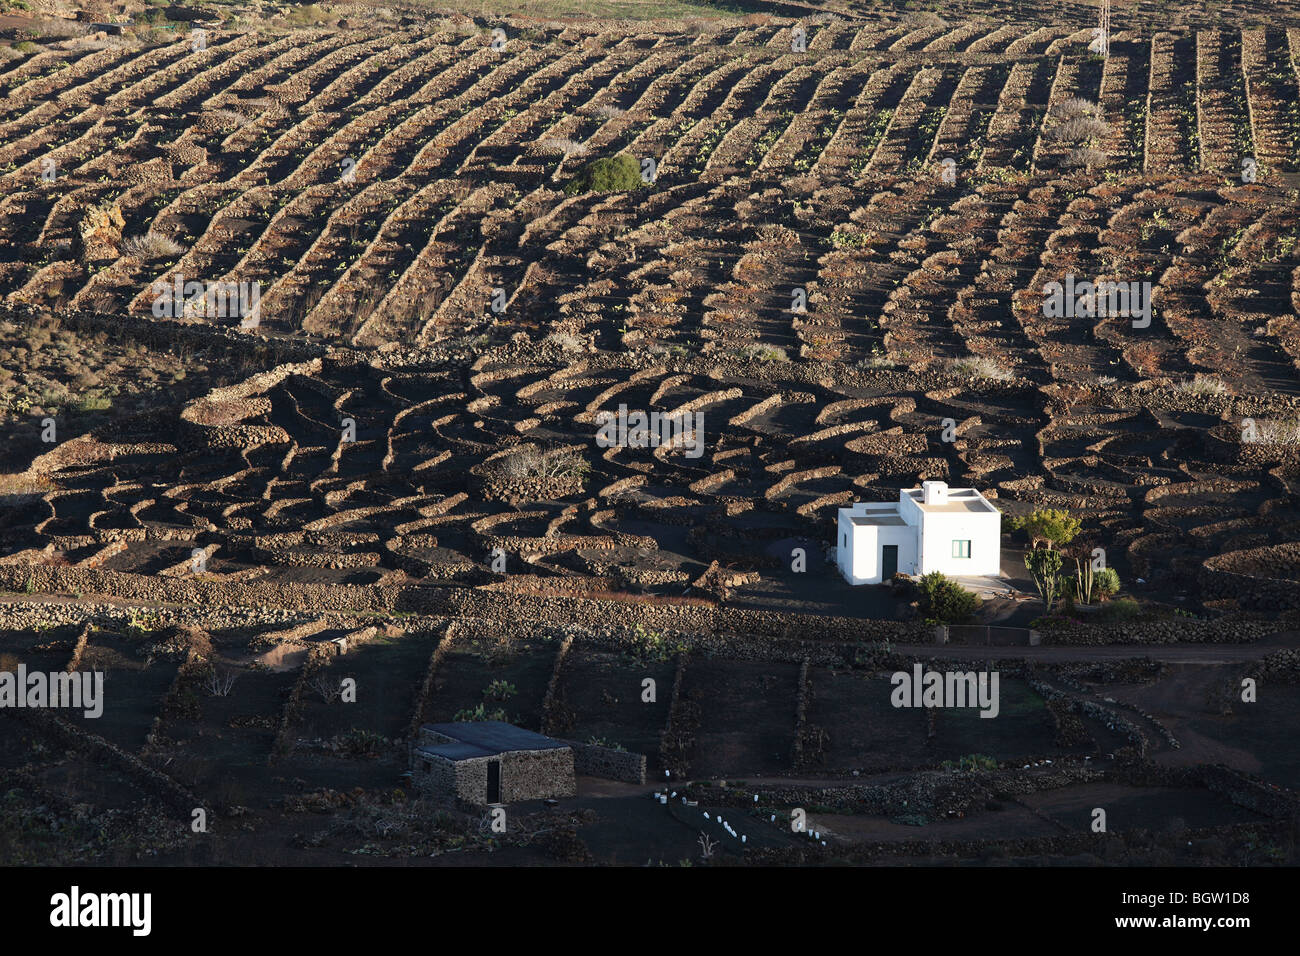 Agricultural landscape with supporting walls near Ye, Lanzarote, Canary Islands, Spain, Europe - Stock Image